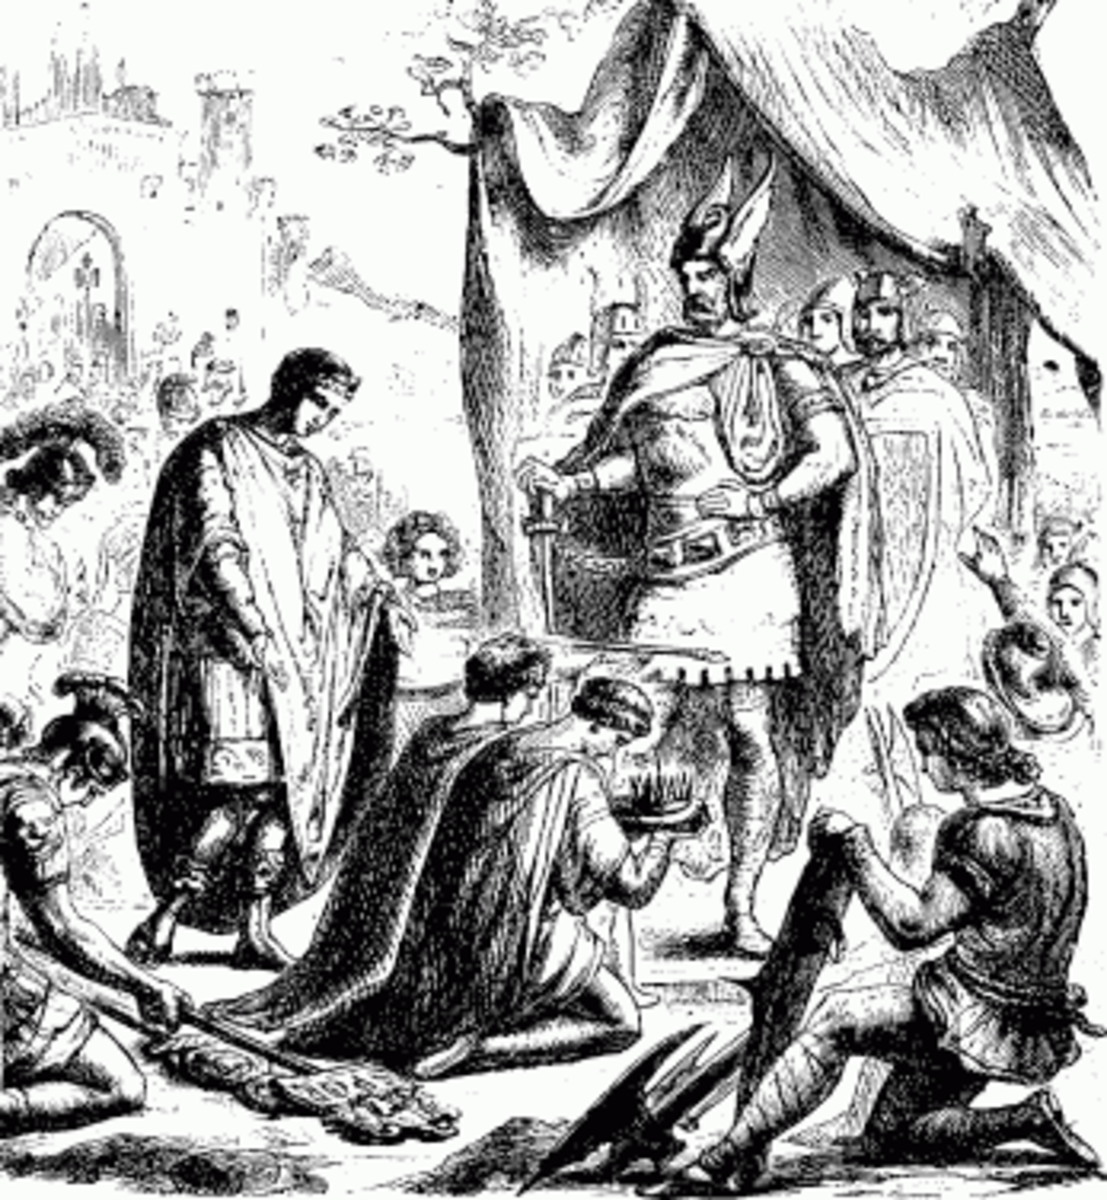 The last Western Emperor Romulus Augustus surrendering the Imperial crown to Odoacer, who promptly proclaimed himself King of Italy.